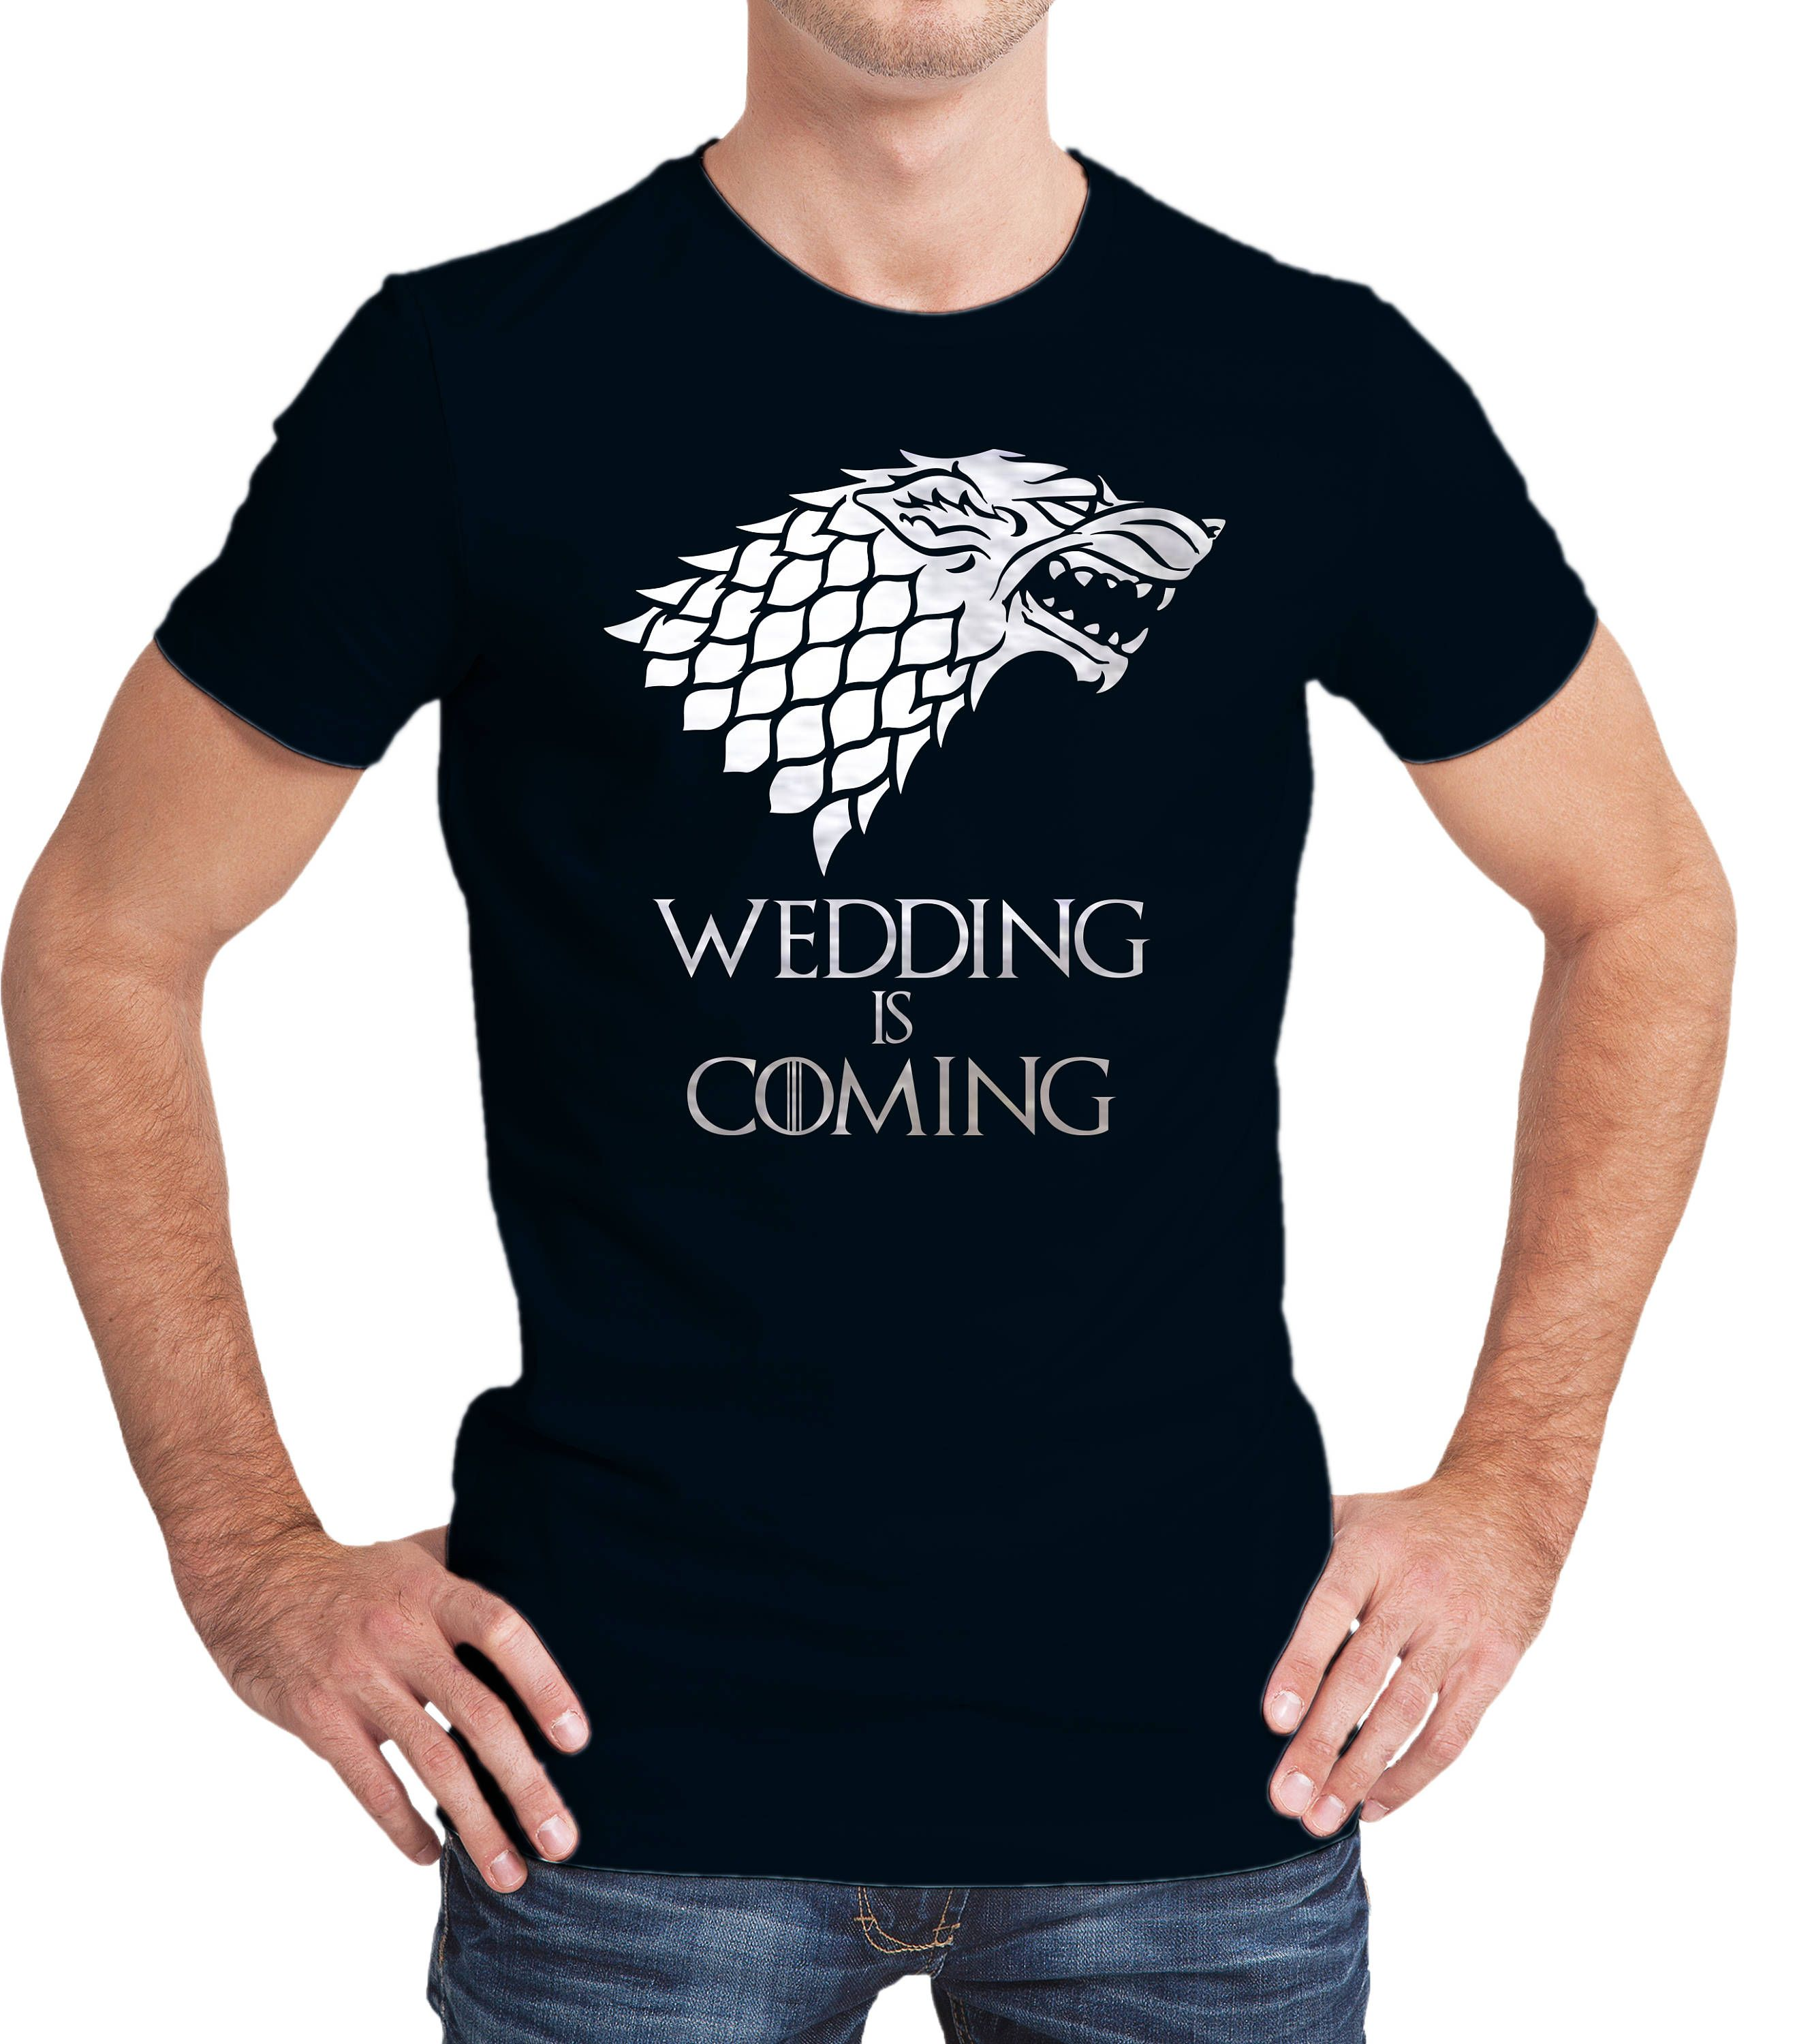 Game Of Thrones Stark Inspired Groom T Shirt With Text Wedding Is Dr Kevin Women Boot Casual Shoes 4023 Navy 38 Coming By Iganidesign On Etsy